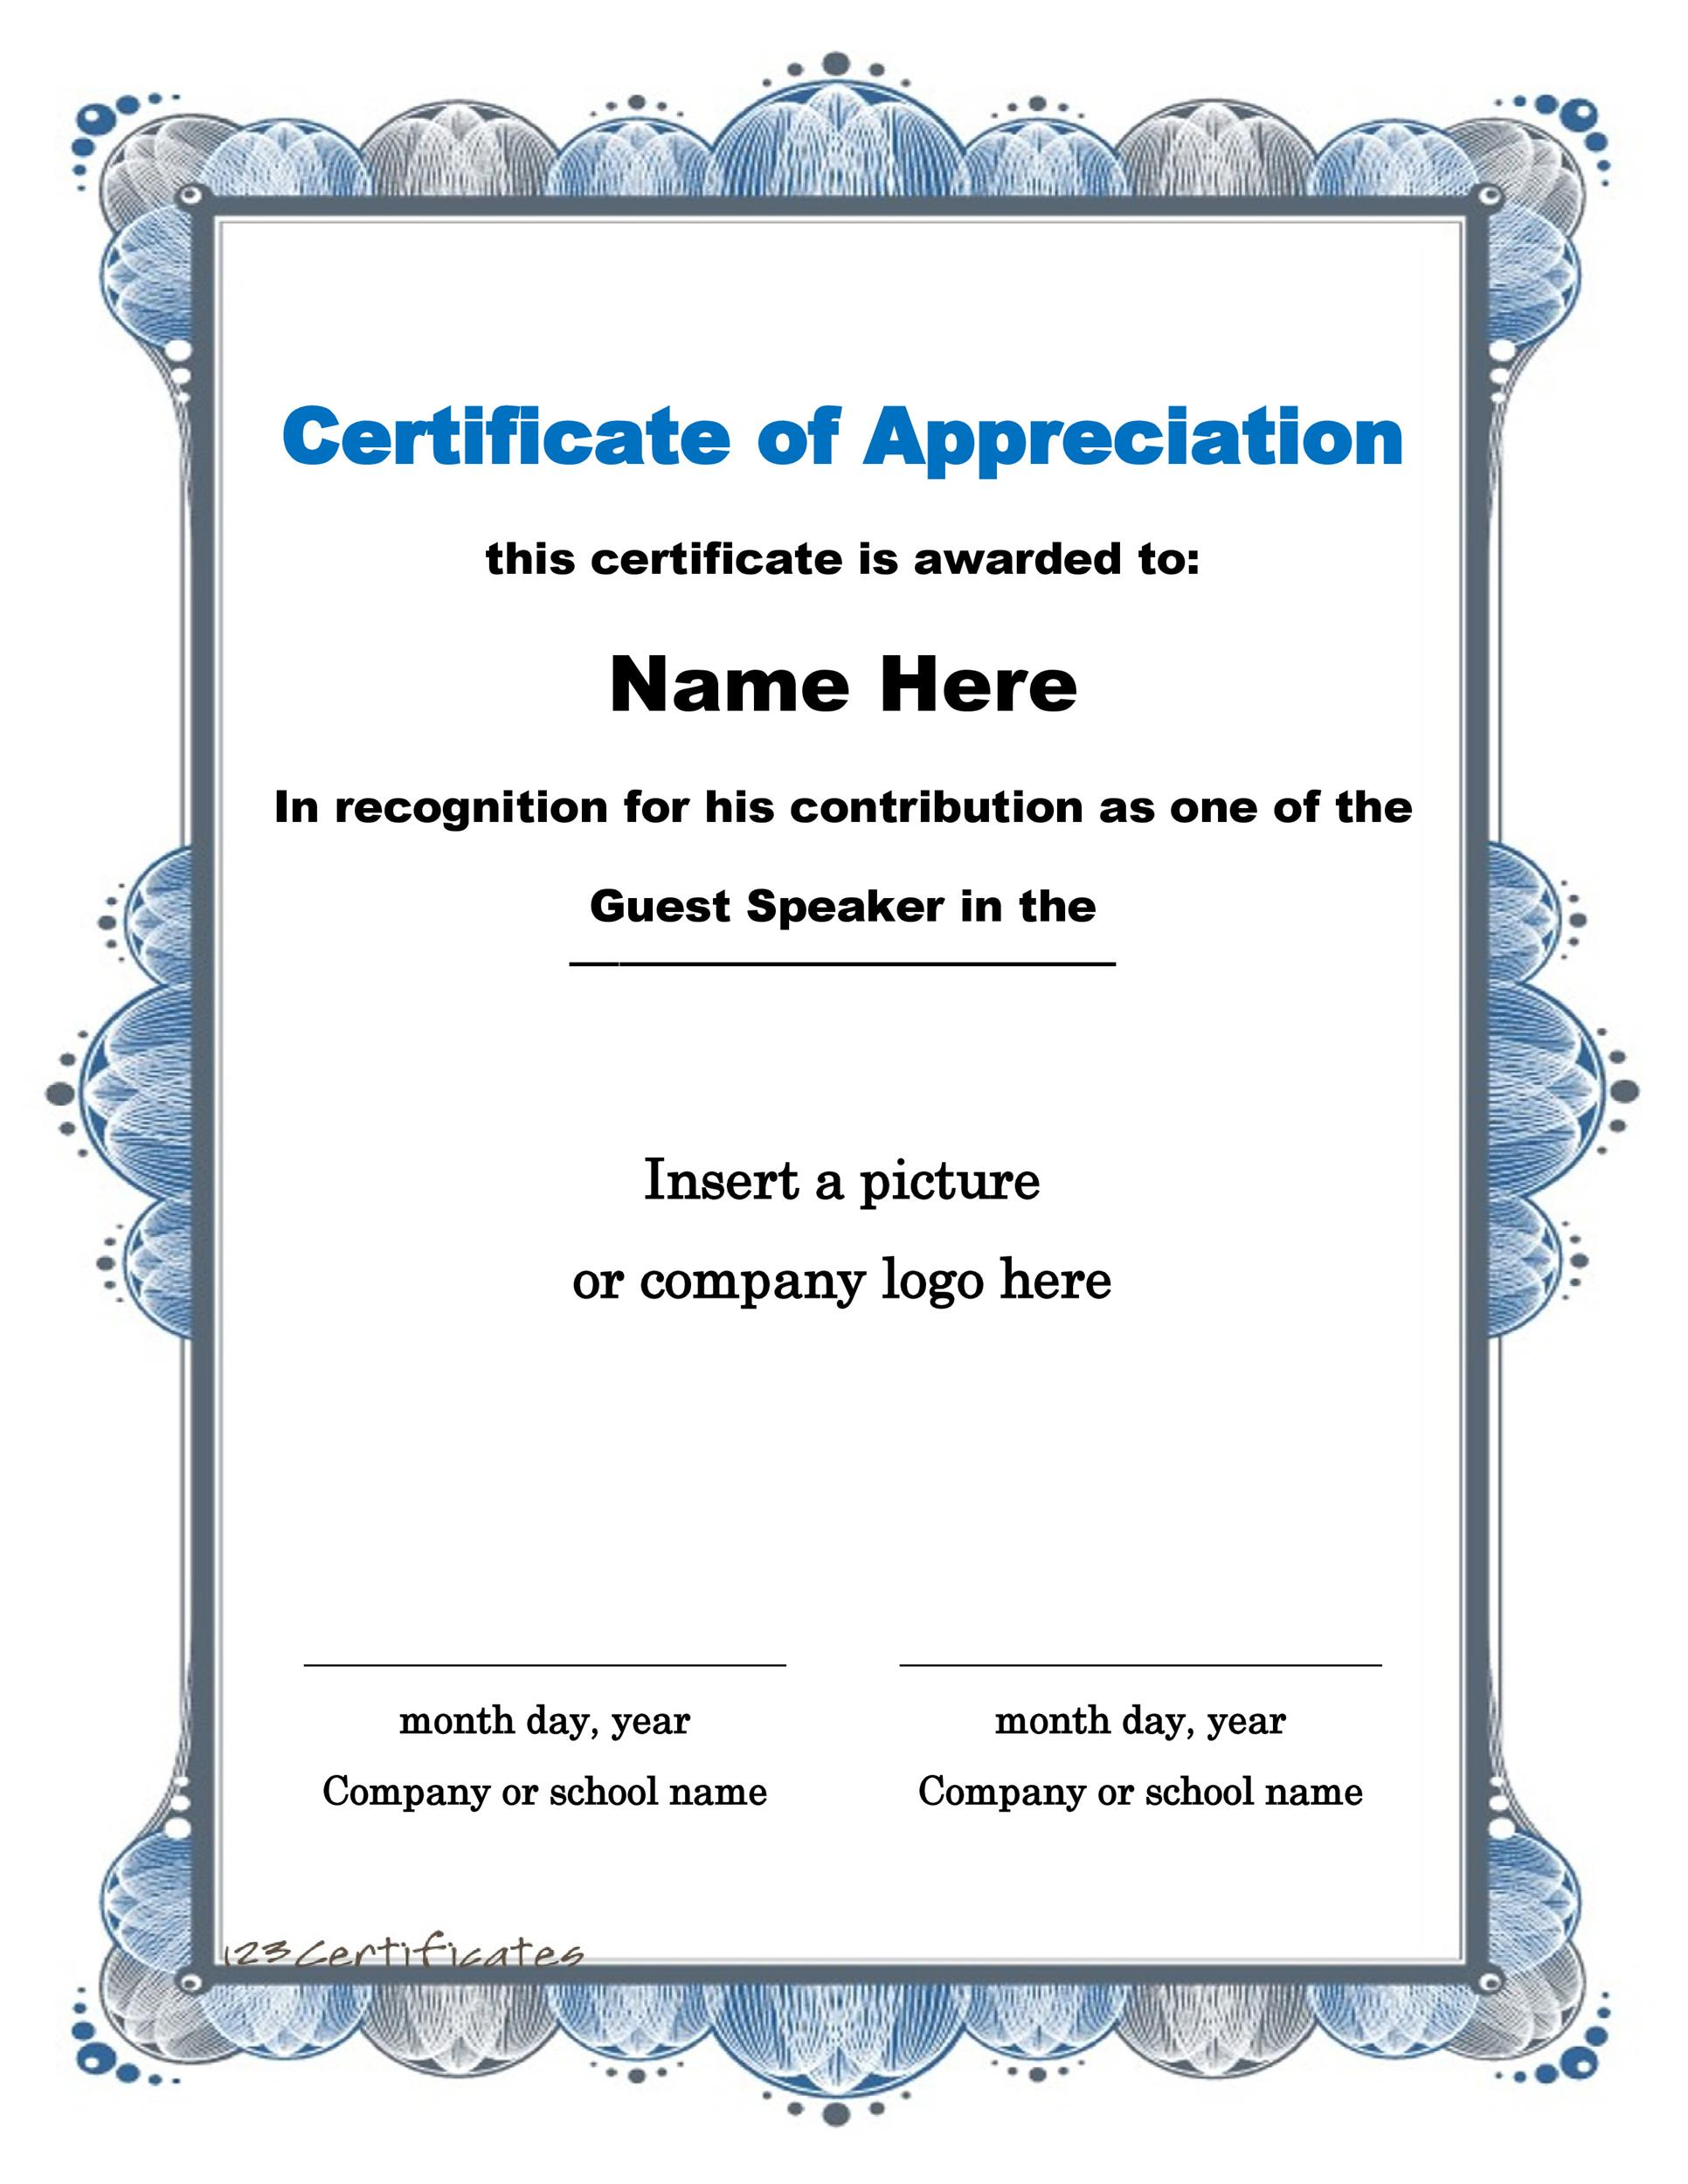 30 free certificate of appreciation templates and letters free certificate of appreciation 02 yadclub Gallery